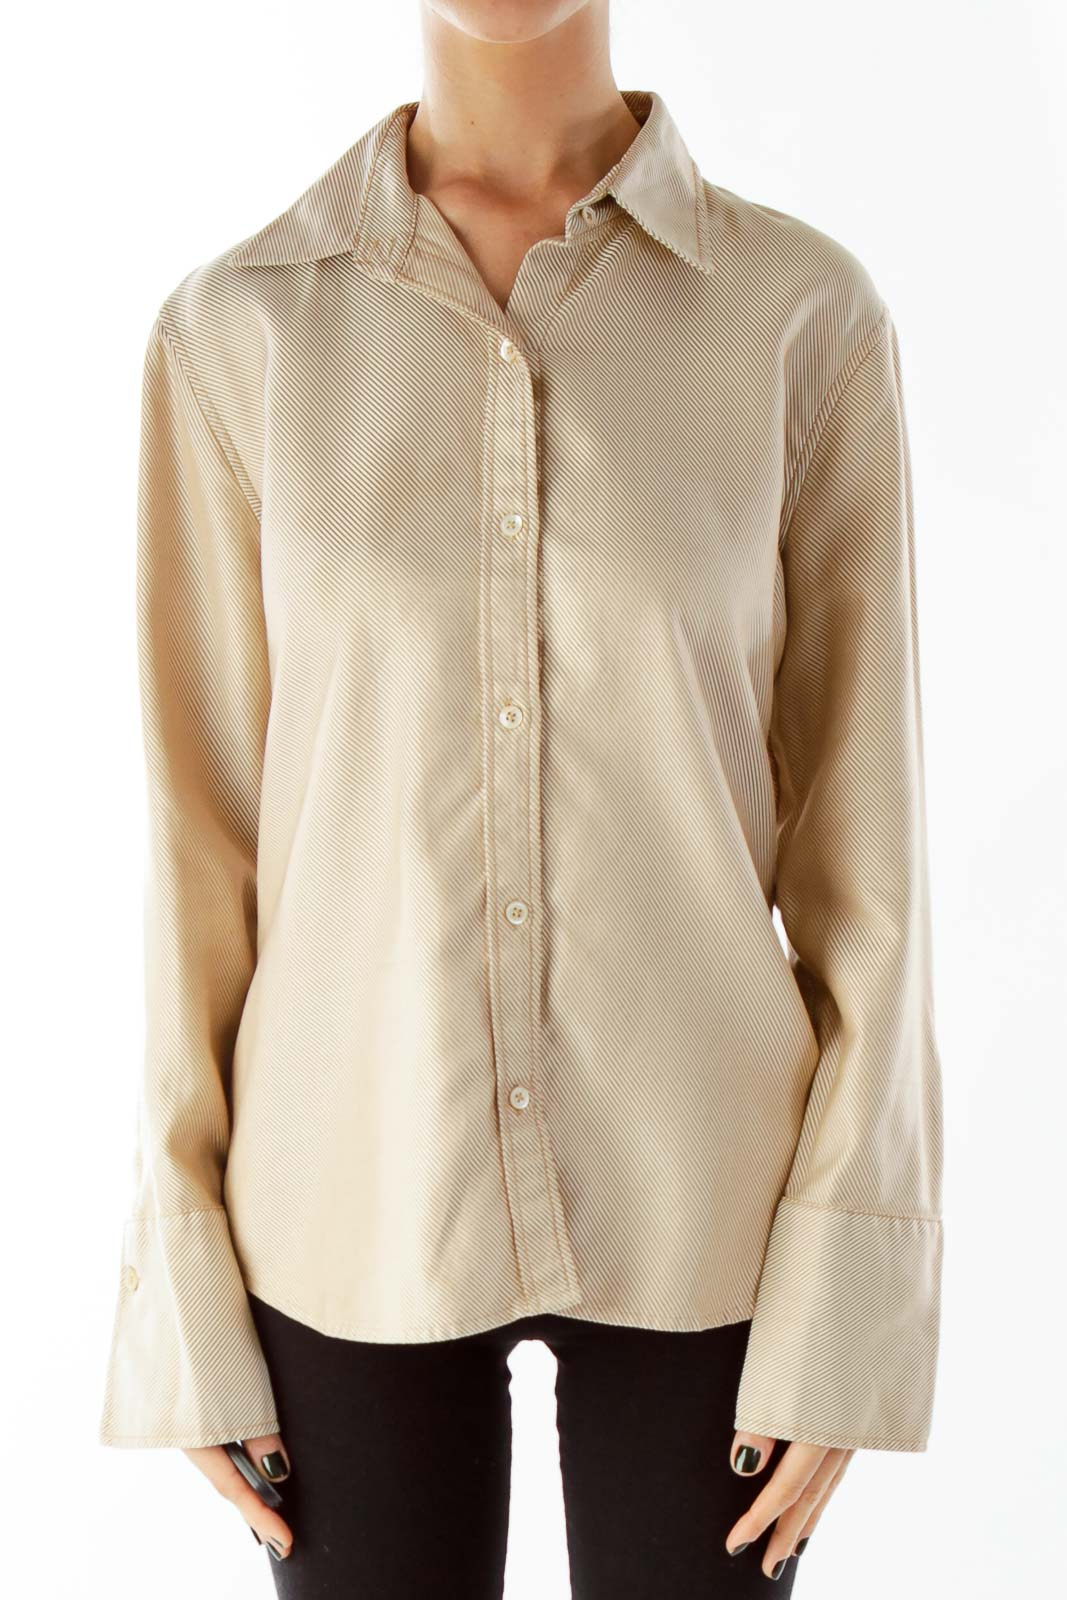 Brown Striped Buttoned Shirt